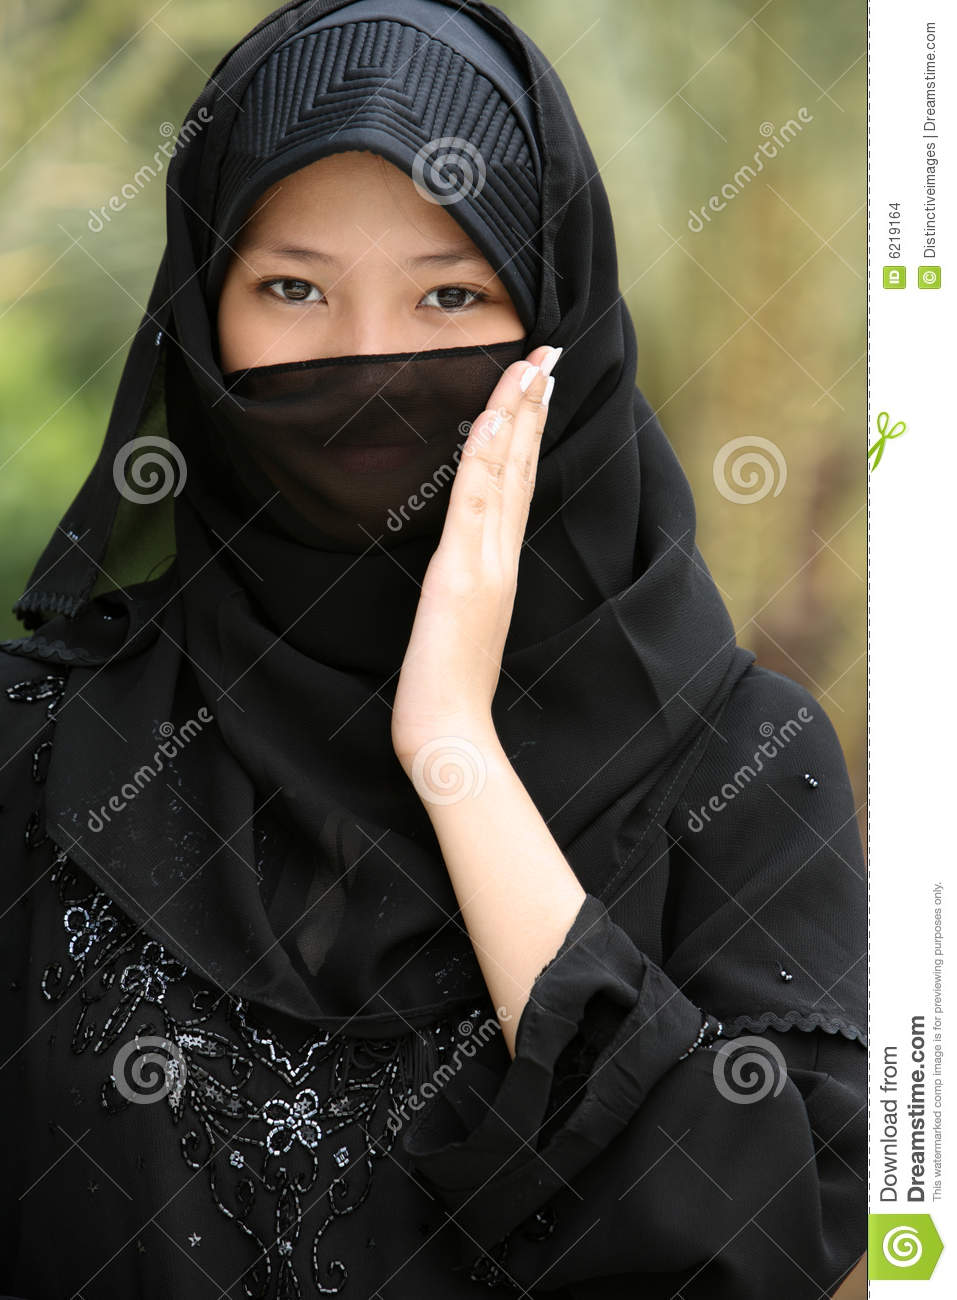 rhinecliff muslim girl personals Want to date a muslim girl and do not know how to start check our top tips of how to date a muslim woman.